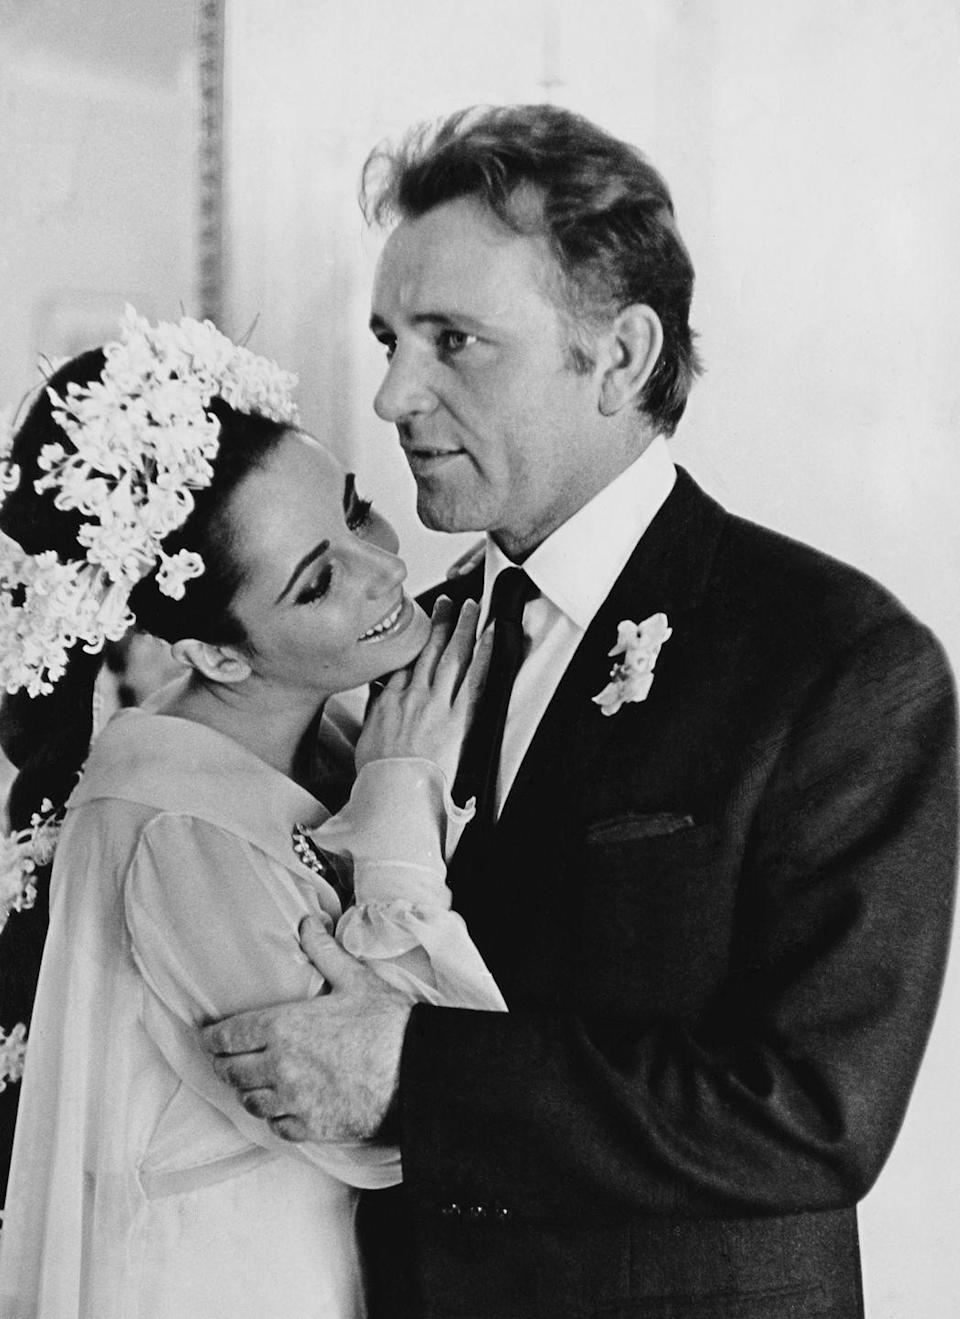 """<p>Richard Burton and Elizabeth Taylor were both married when they met on the set of <em>Cleopatra. </em>The actors left their spouses for one another, got married in 1964, and after 10 years divorced in 1974. Don't worry: The following year, they reunited and <a href=""""https://go.redirectingat.com?id=74968X1596630&url=https%3A%2F%2Fhome.bt.com%2Fnews%2Fon-this-day%2Foctober-10-1975-liz-taylor-and-richard-burton-remarry-11364009596242&sref=https%3A%2F%2Fwww.womenshealthmag.com%2Frelationships%2Fg34627269%2Fcelebrity-couples-divorced-and-remarried%2F"""" rel=""""nofollow noopener"""" target=""""_blank"""" data-ylk=""""slk:eloped in Botswana"""" class=""""link rapid-noclick-resp"""">eloped in Botswana</a>, but divorced *again* in 1976. </p>"""